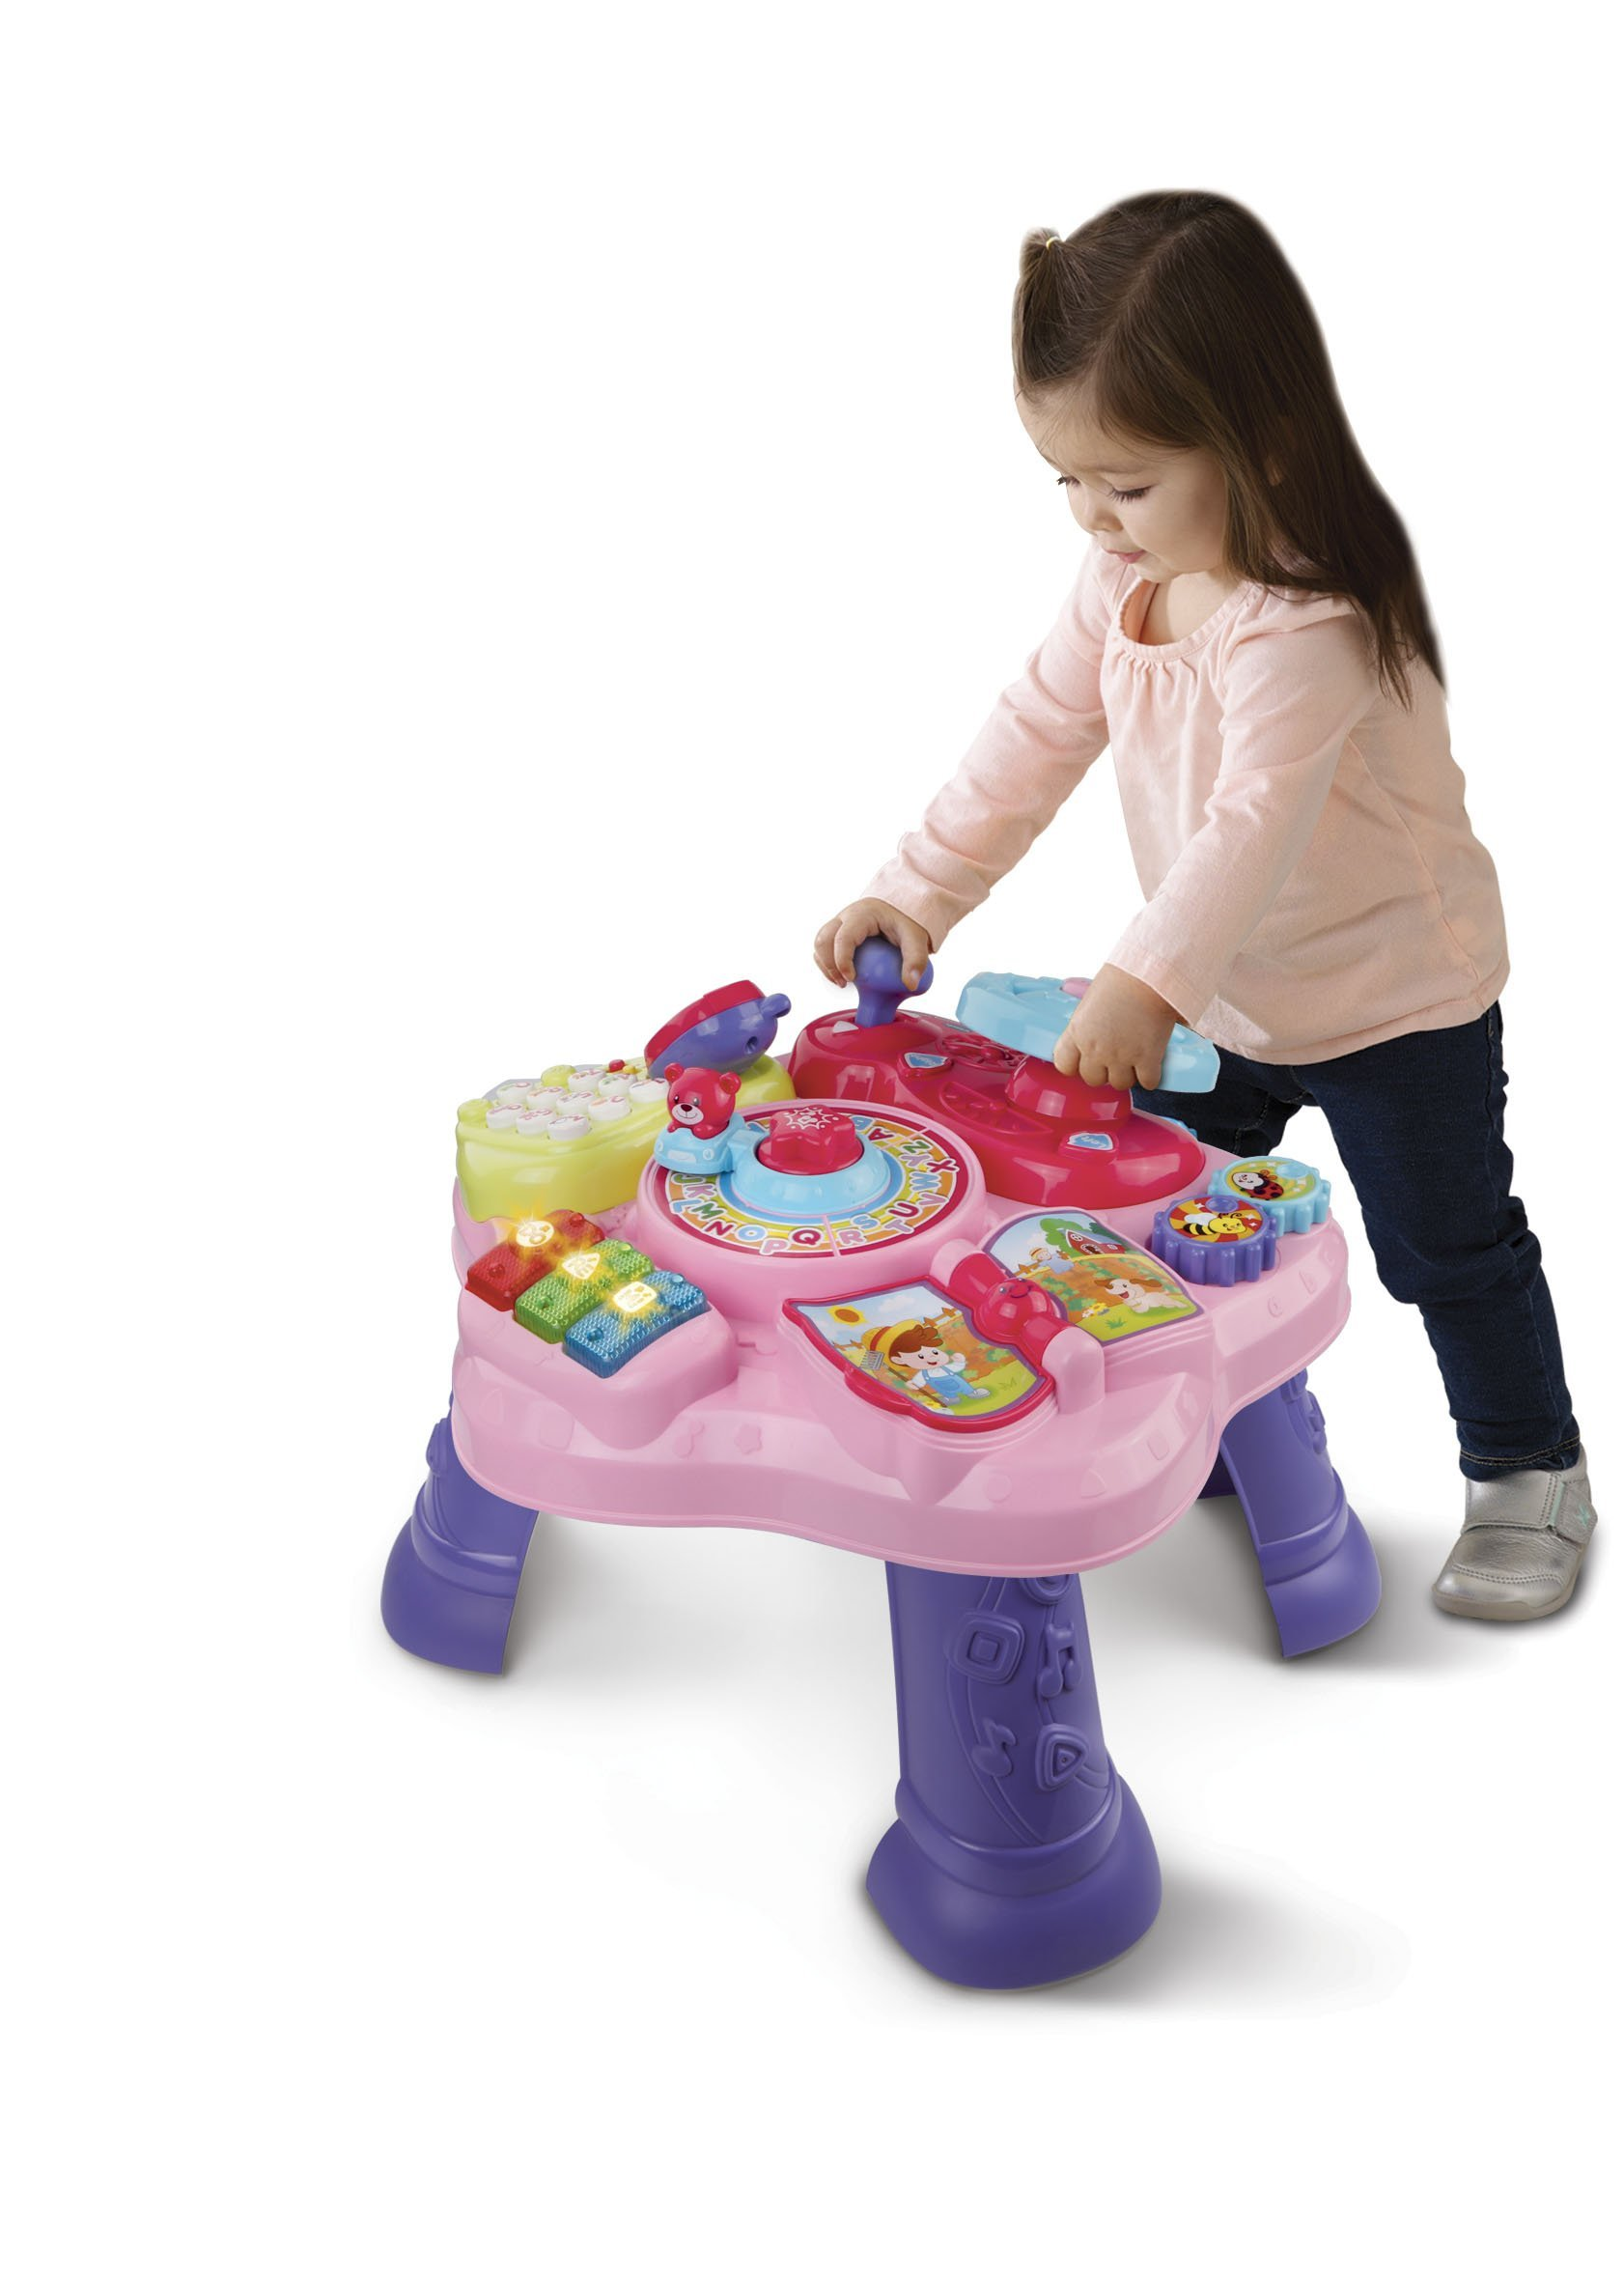 VTech Magic Star Learning Table, Pink (Frustration Free Packaging) by VTech (Image #4)